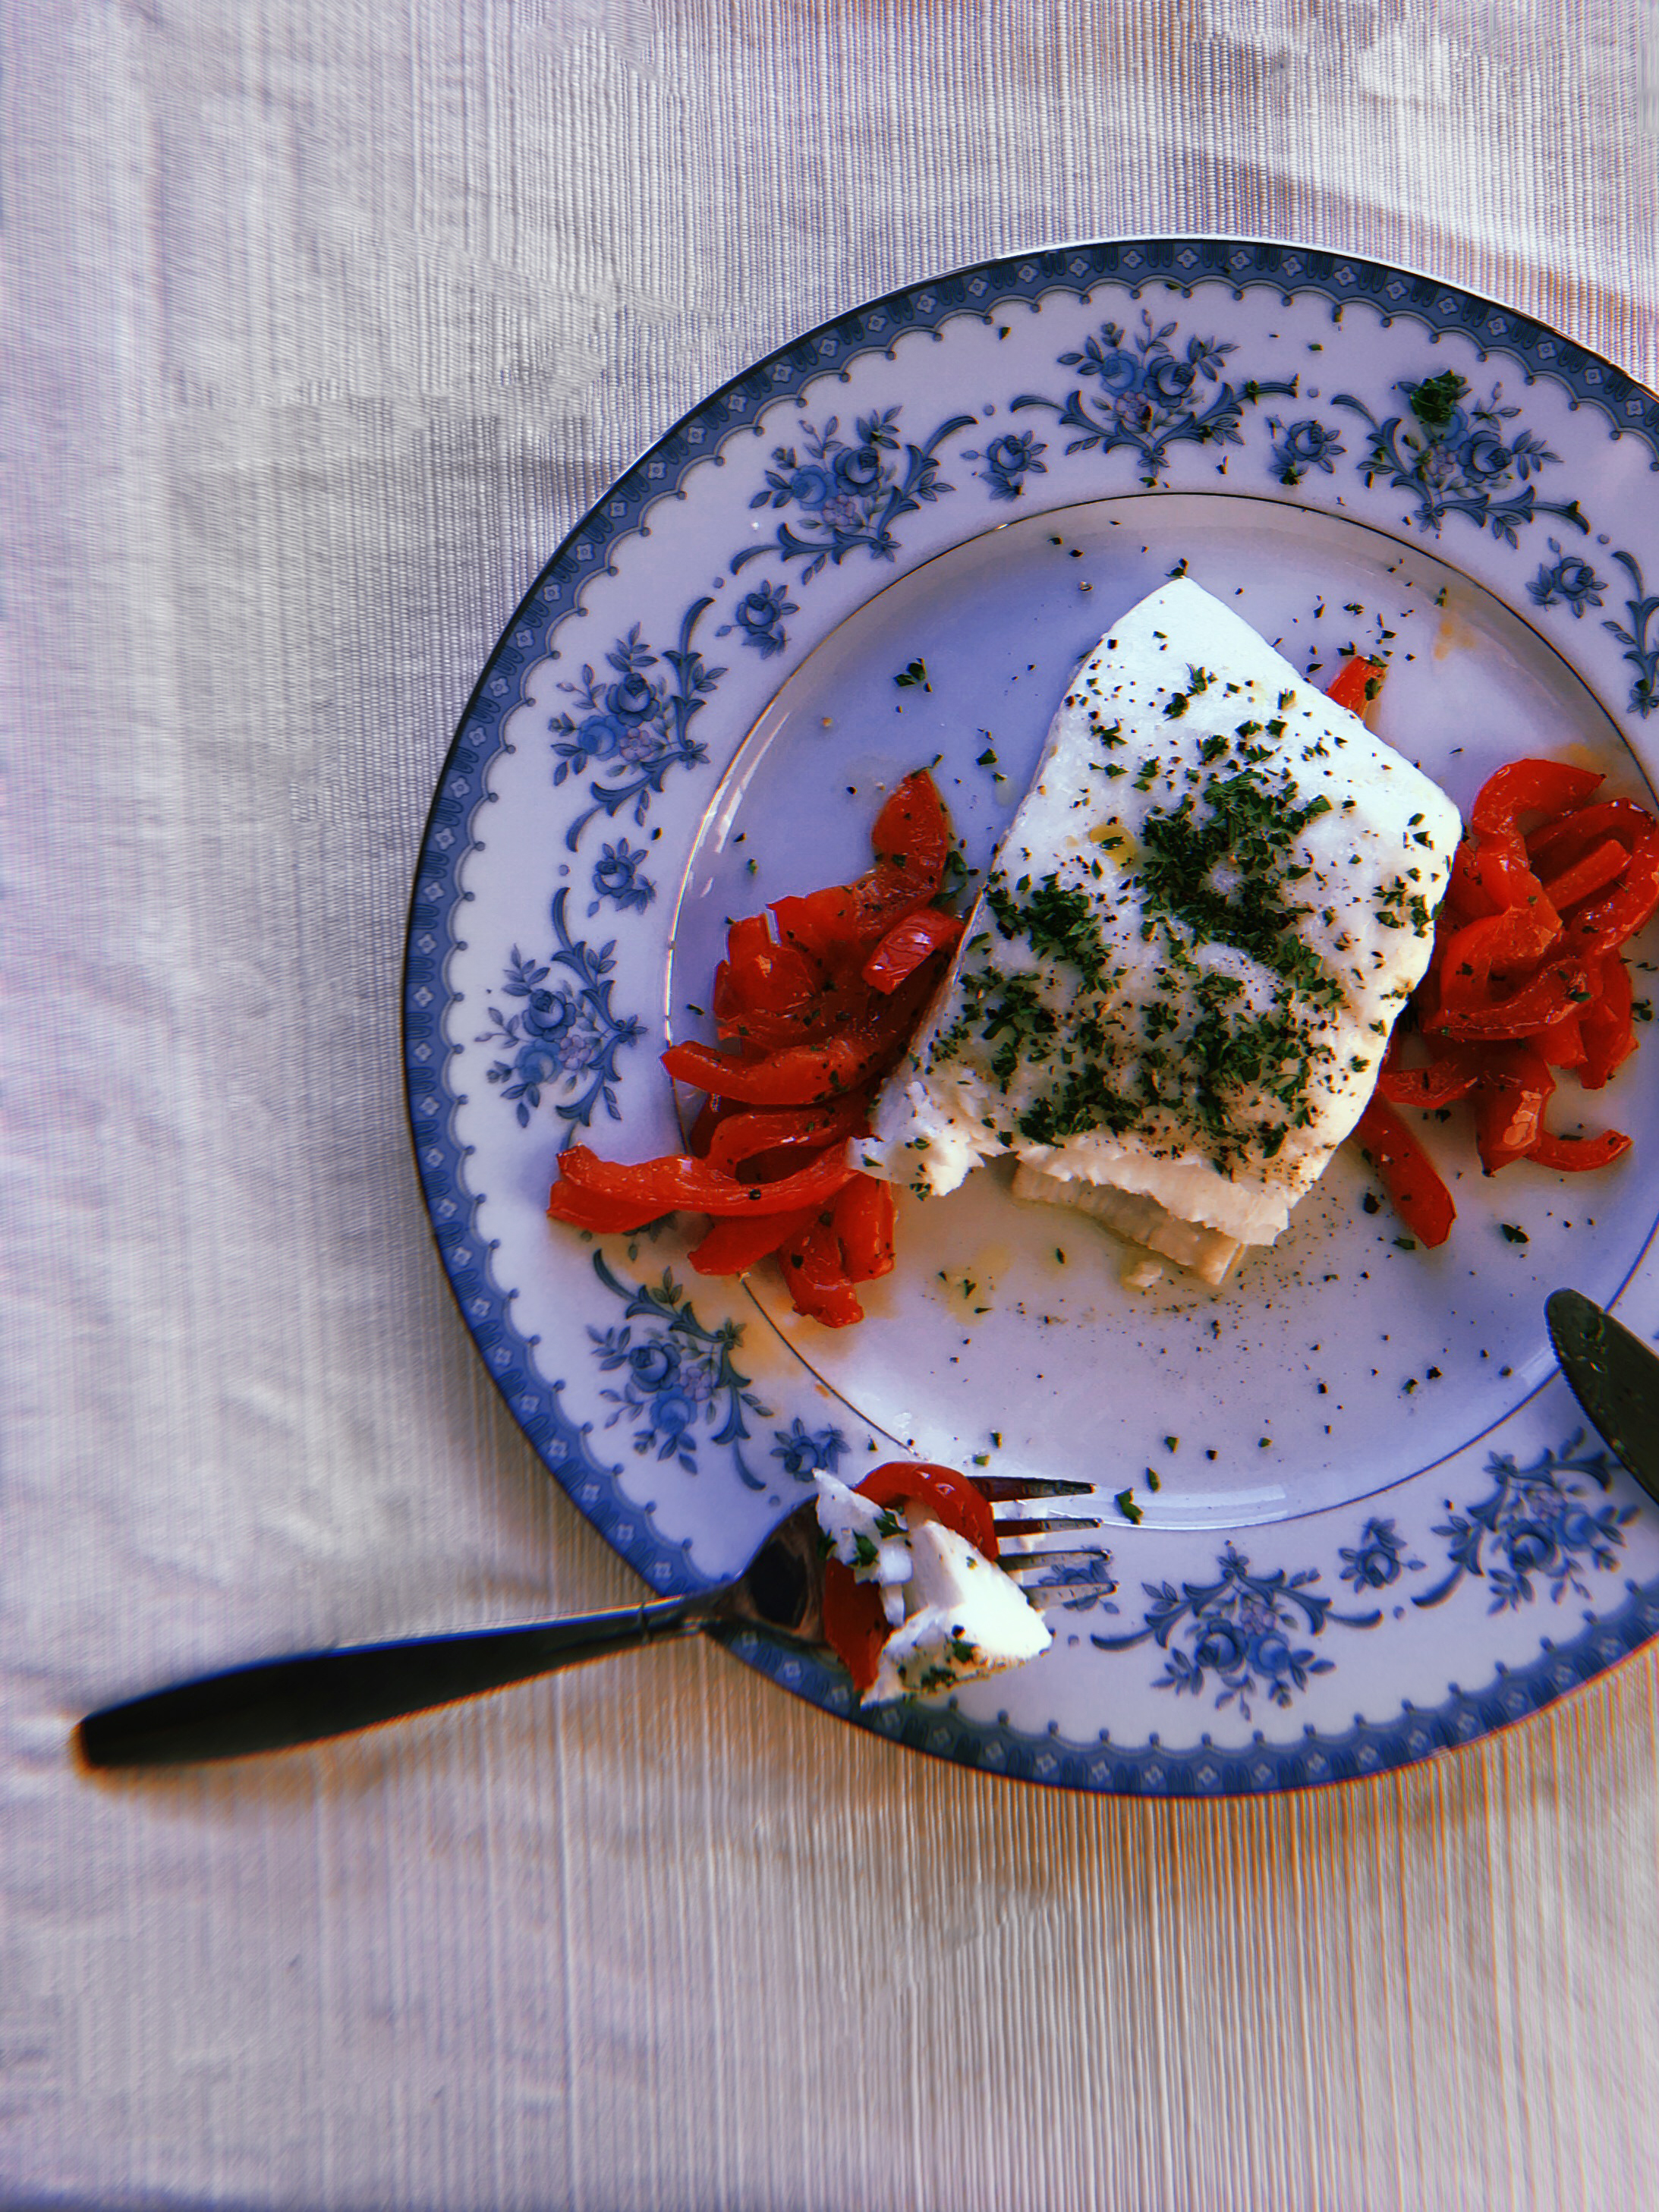 - white-fish with marinated red peppers